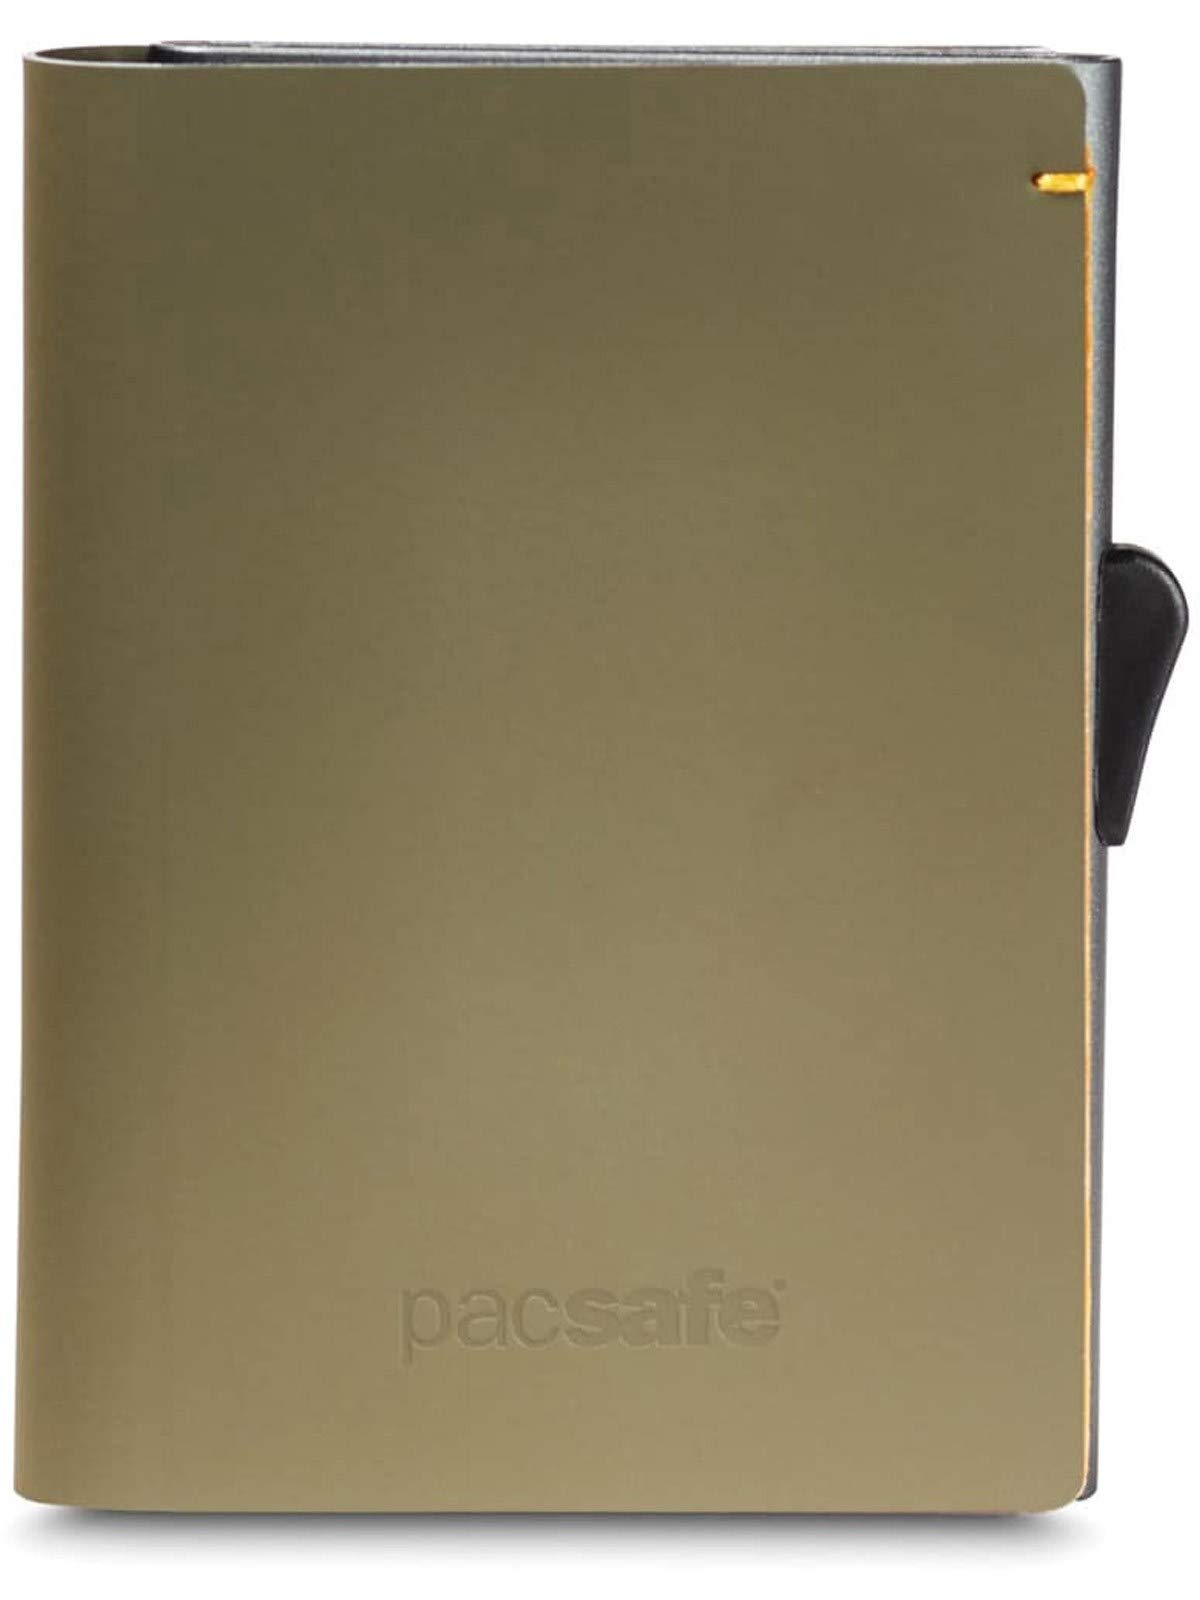 PacSafe Men's Rfidsafe Tec RFID Blocking Slider Wallet-Utility